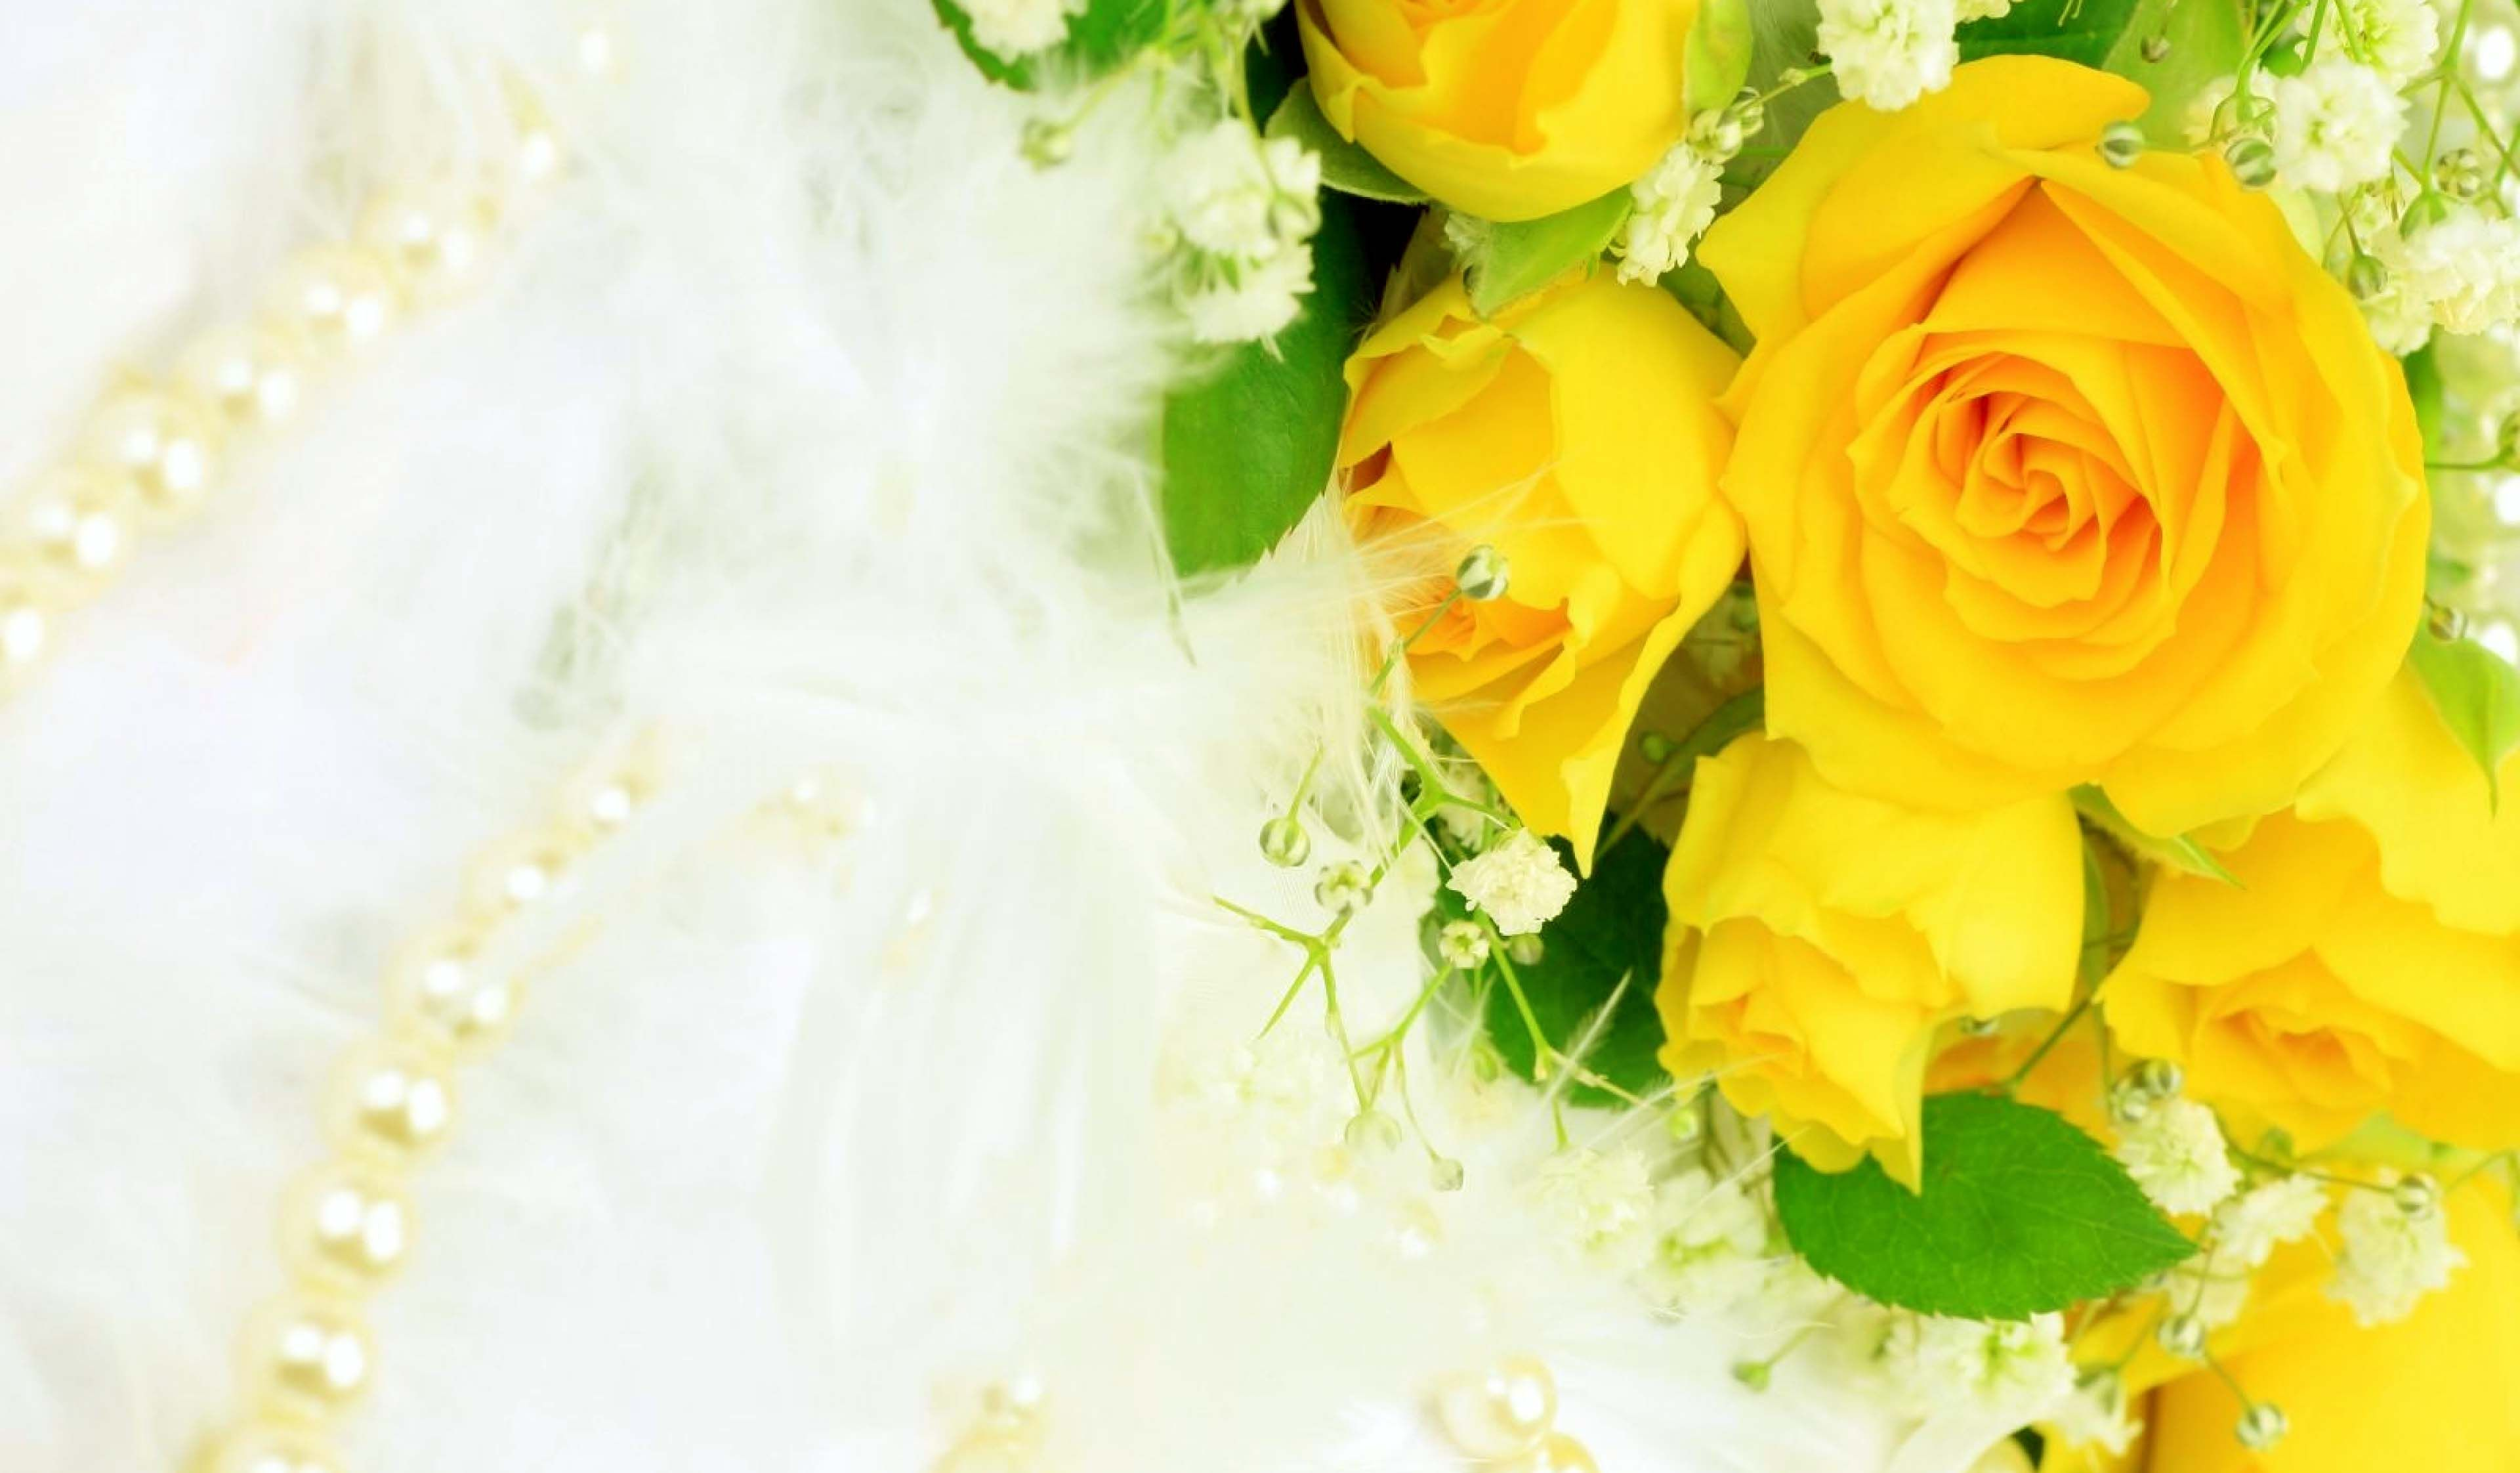 Hd wallpaper yellow rose - Stunning Yellow Roses Natural Beauty Images Hd Wallpapers